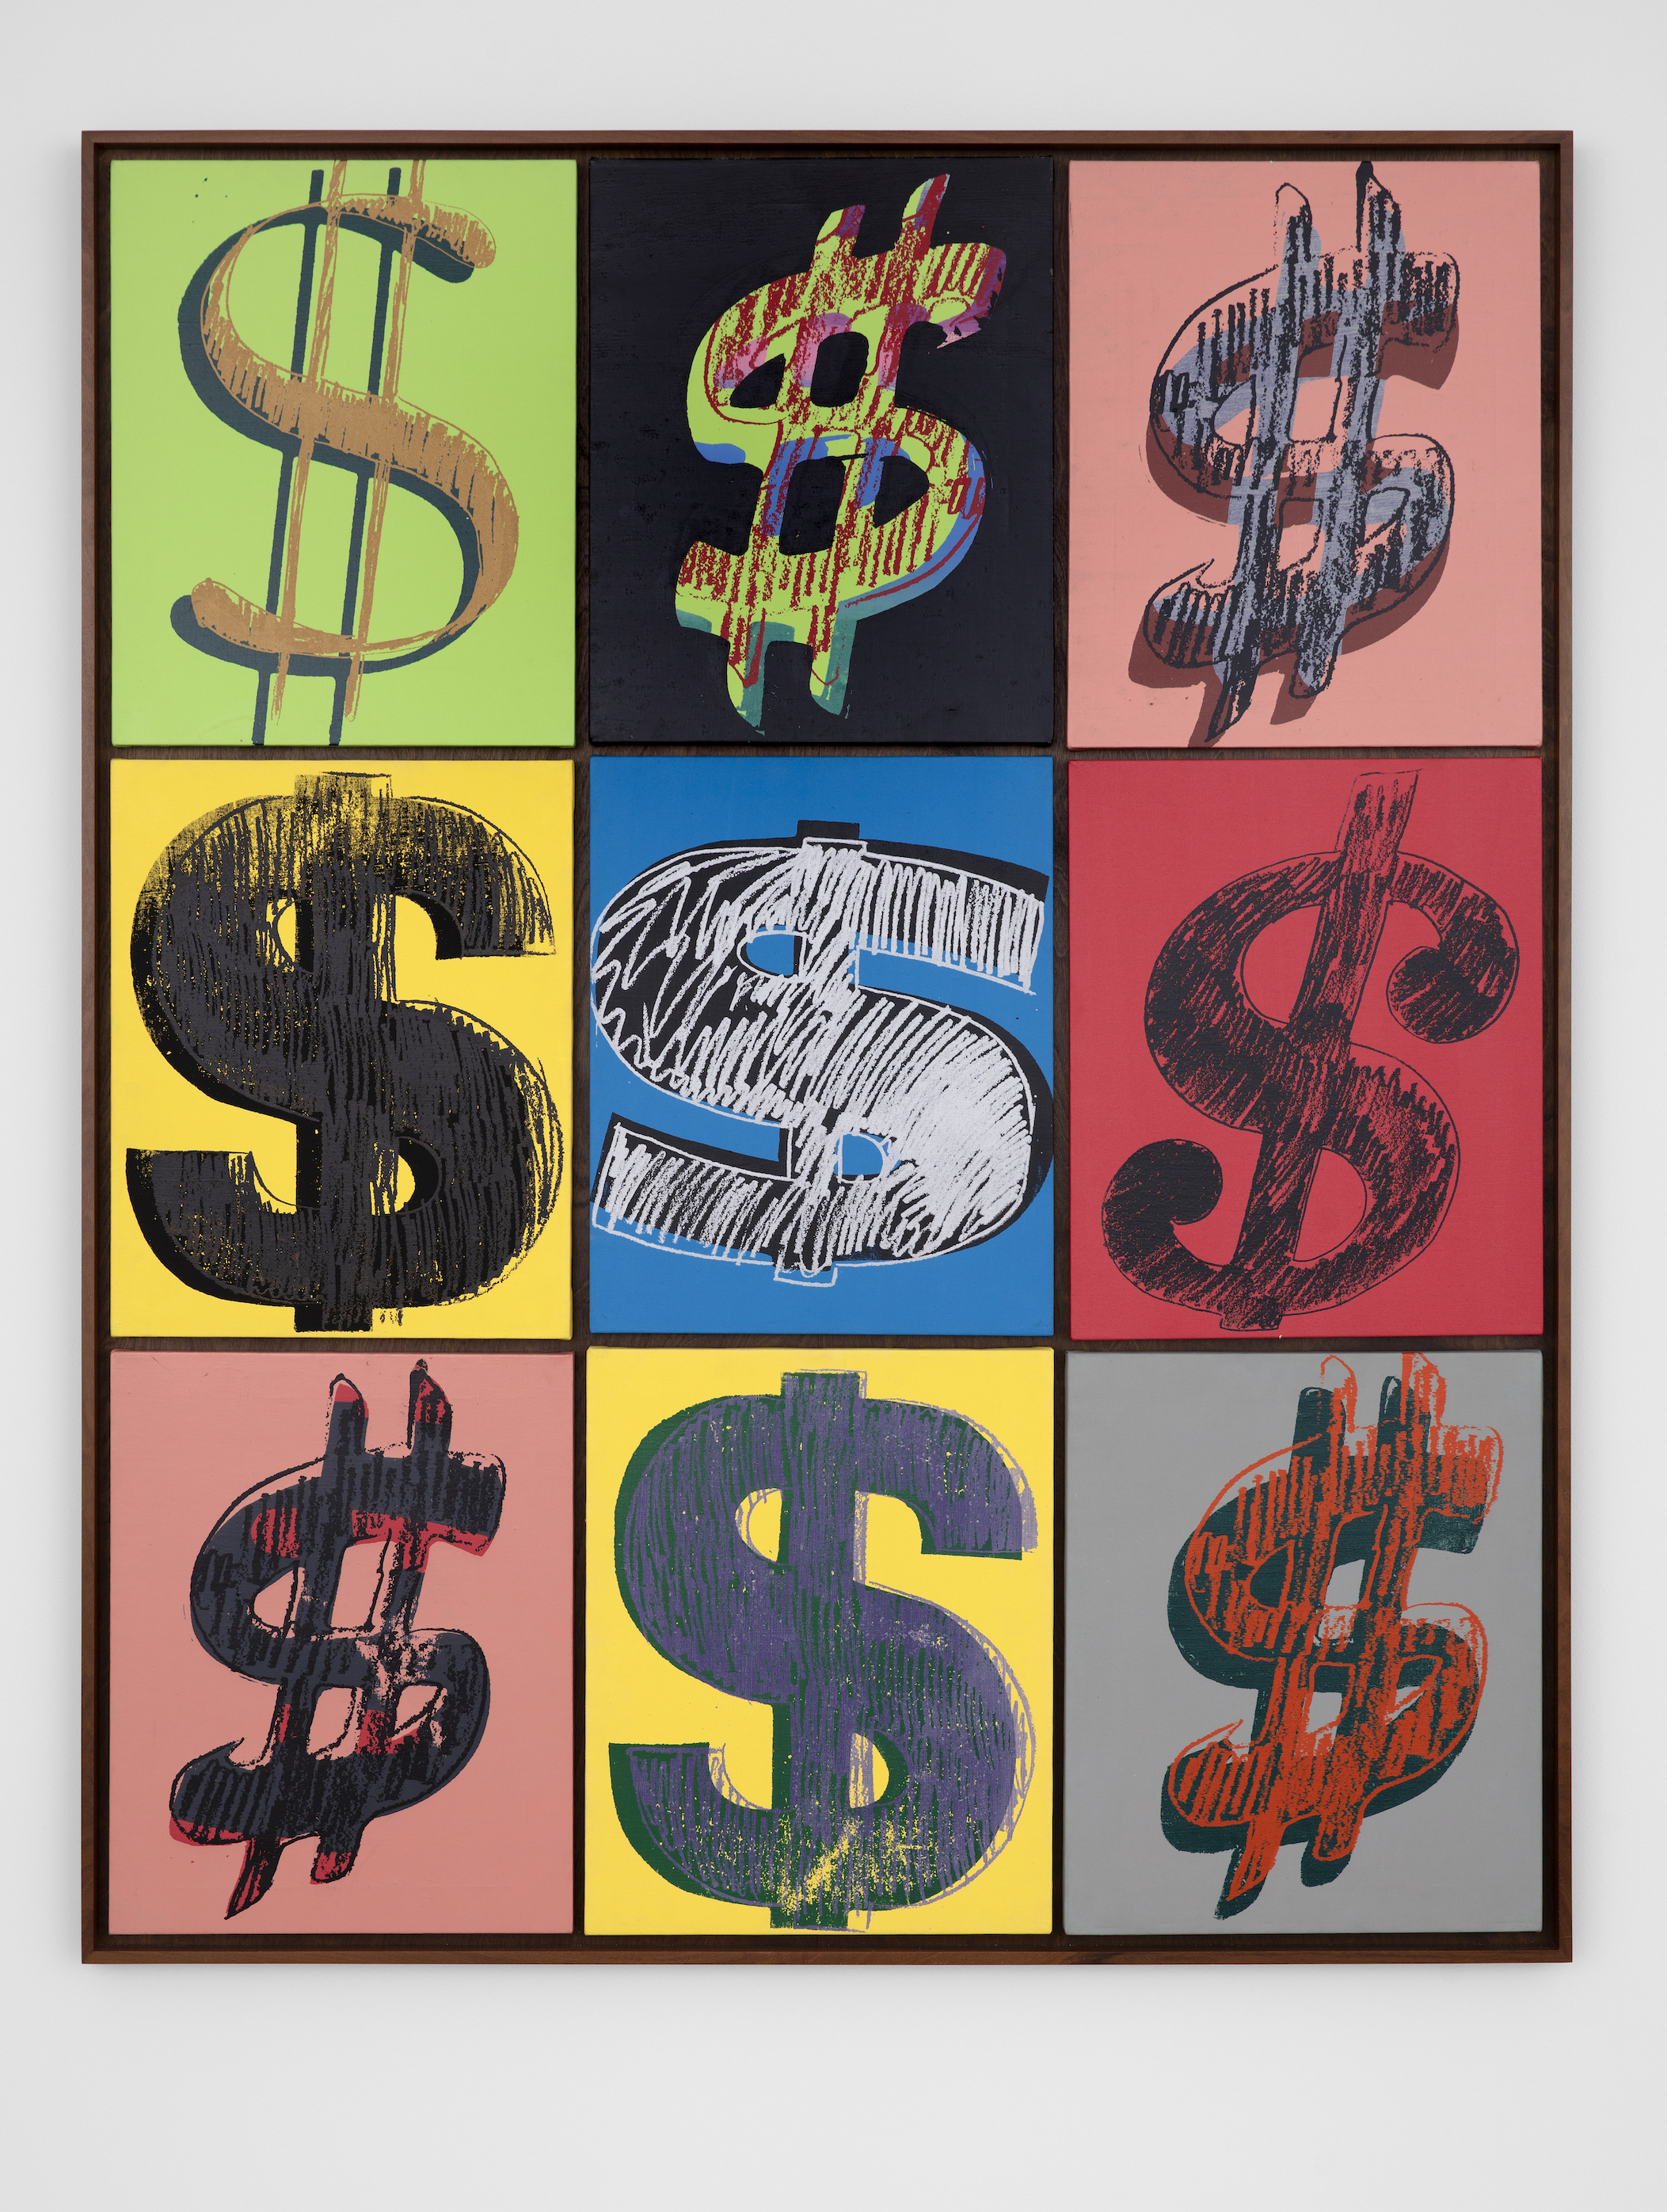 ANDY WARHOL,  Dollar Signs , c. 1981. Acrylic and silkscreen on canvas. 62 3/4 x 51 inches. AW81.007 ©2019 The Andy Warhol Foundation for the Visual Arts, Inc. / Licensed by American Rights Society (ARS), New York. ©The Estate of Jean-Michel Basquiat / ADAGP, Paris/ ARS, New York 2019.